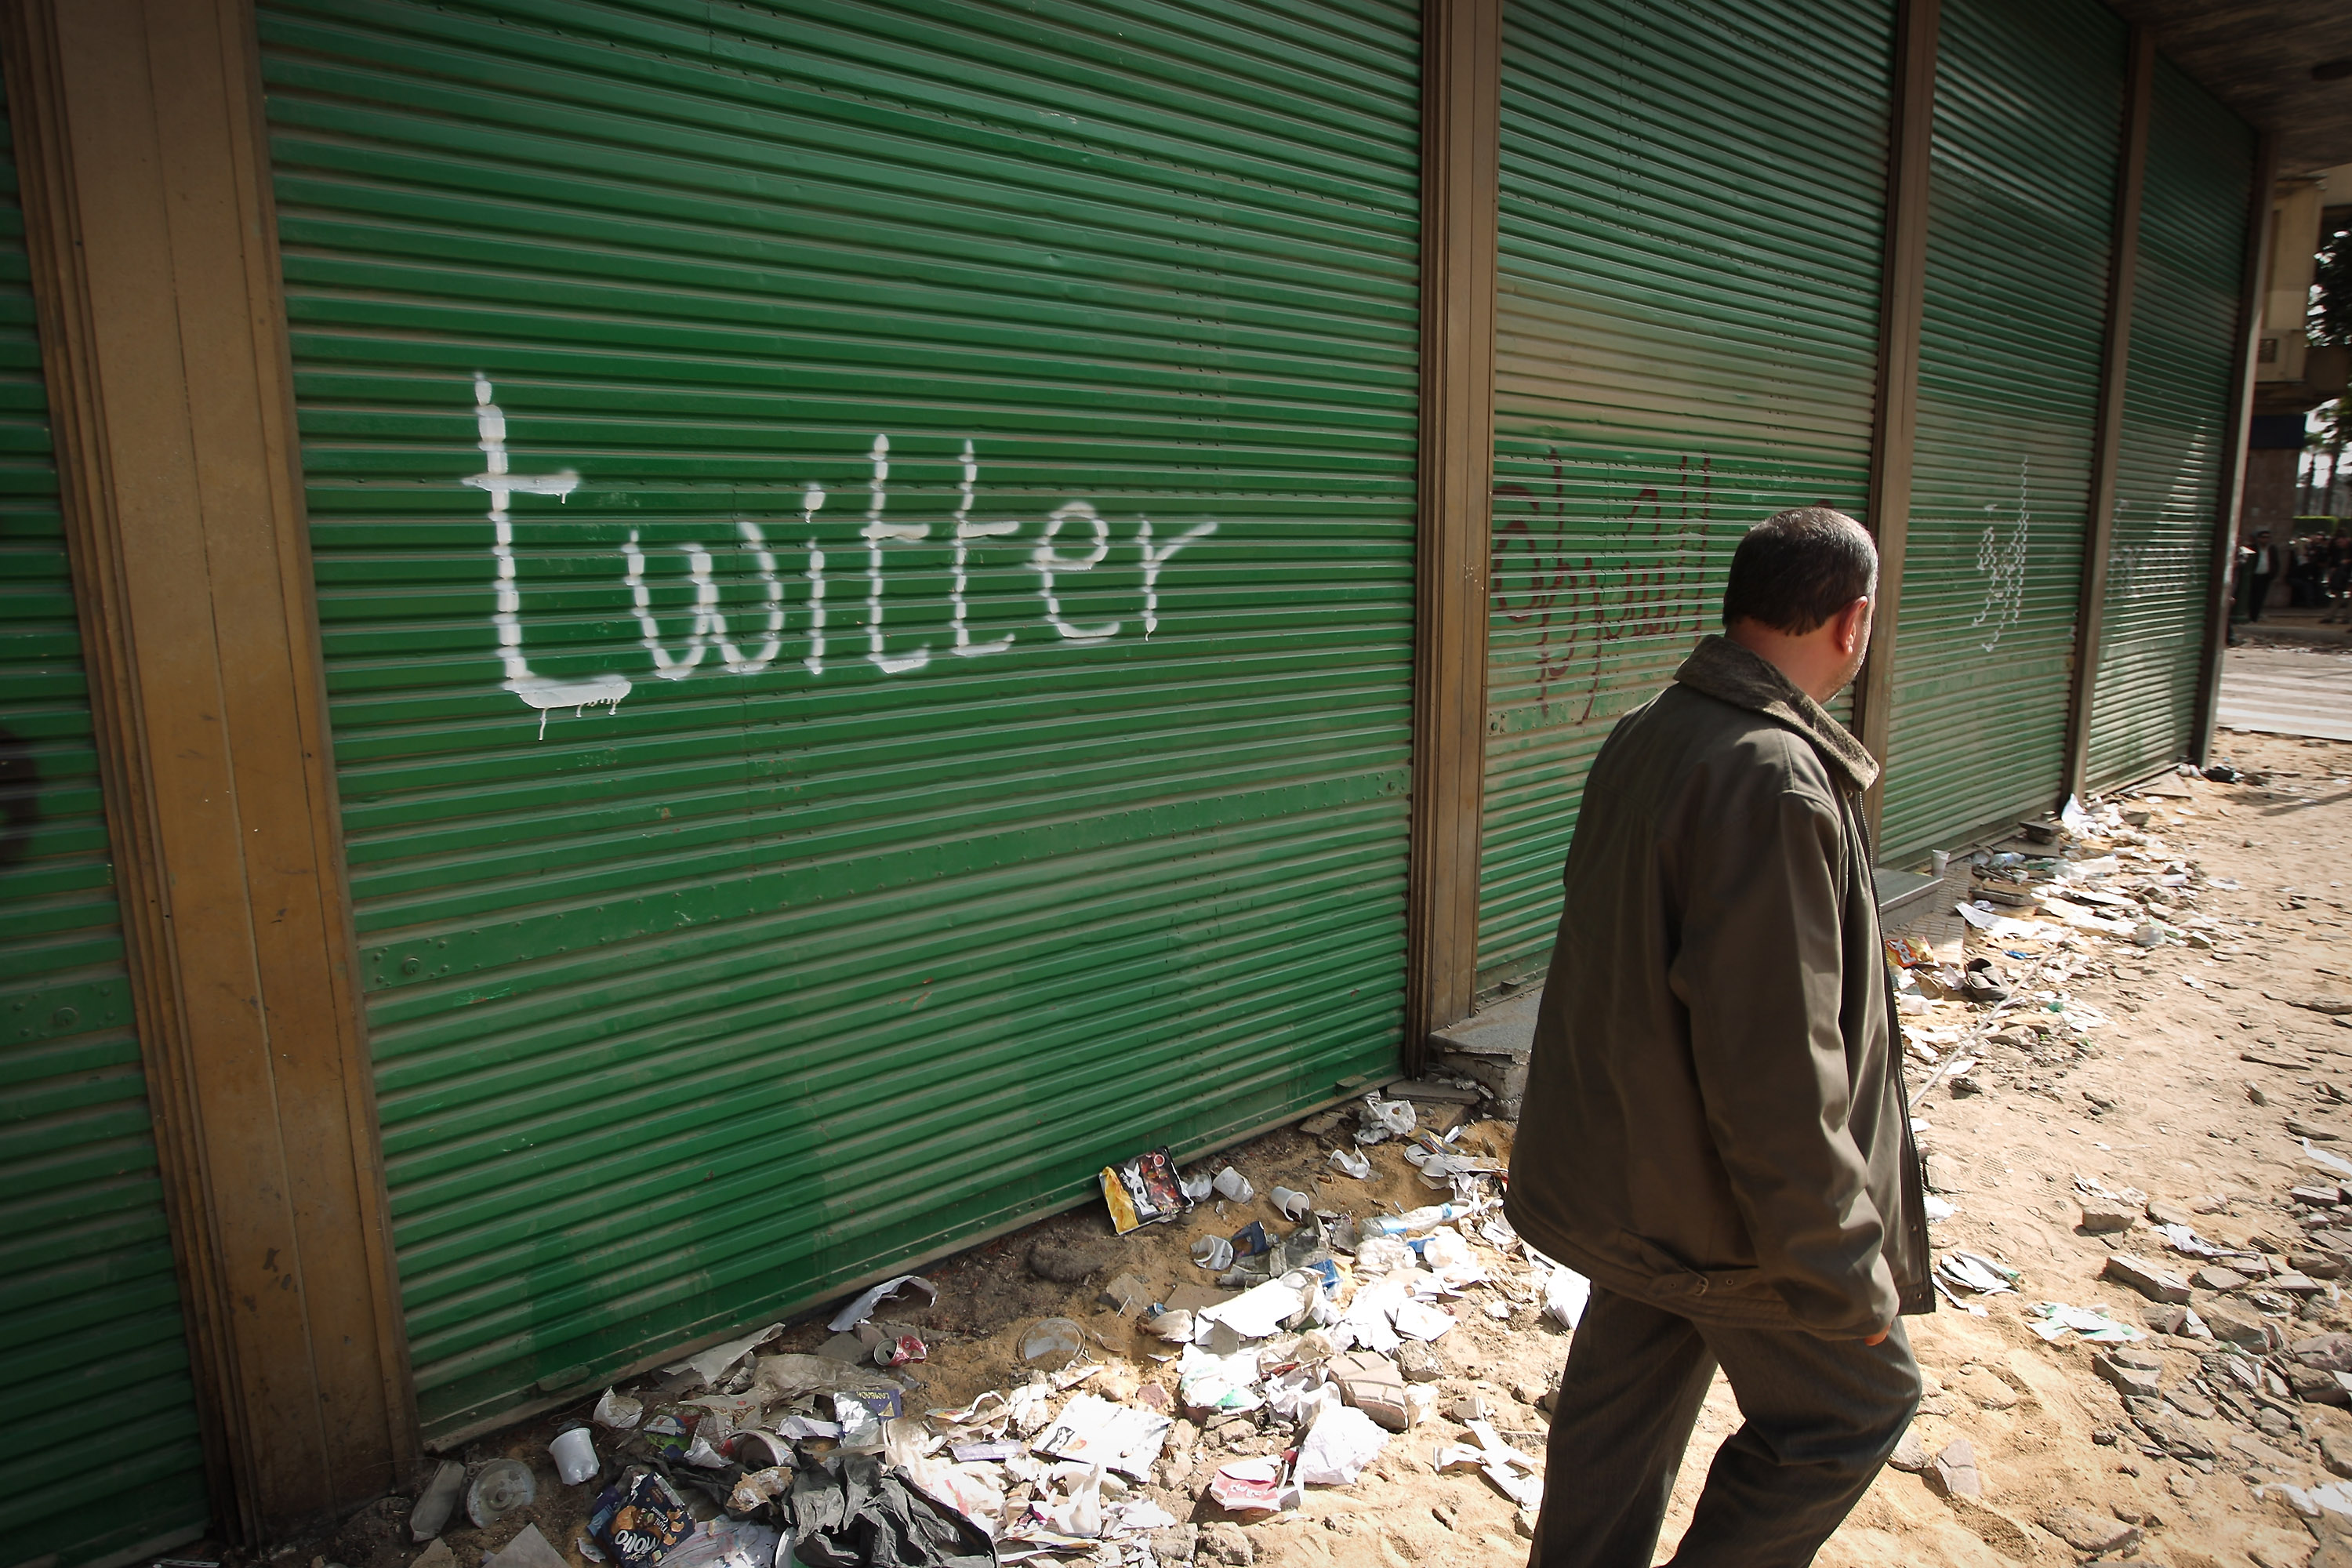 Is Twitter The 'End of the Civilized World'?